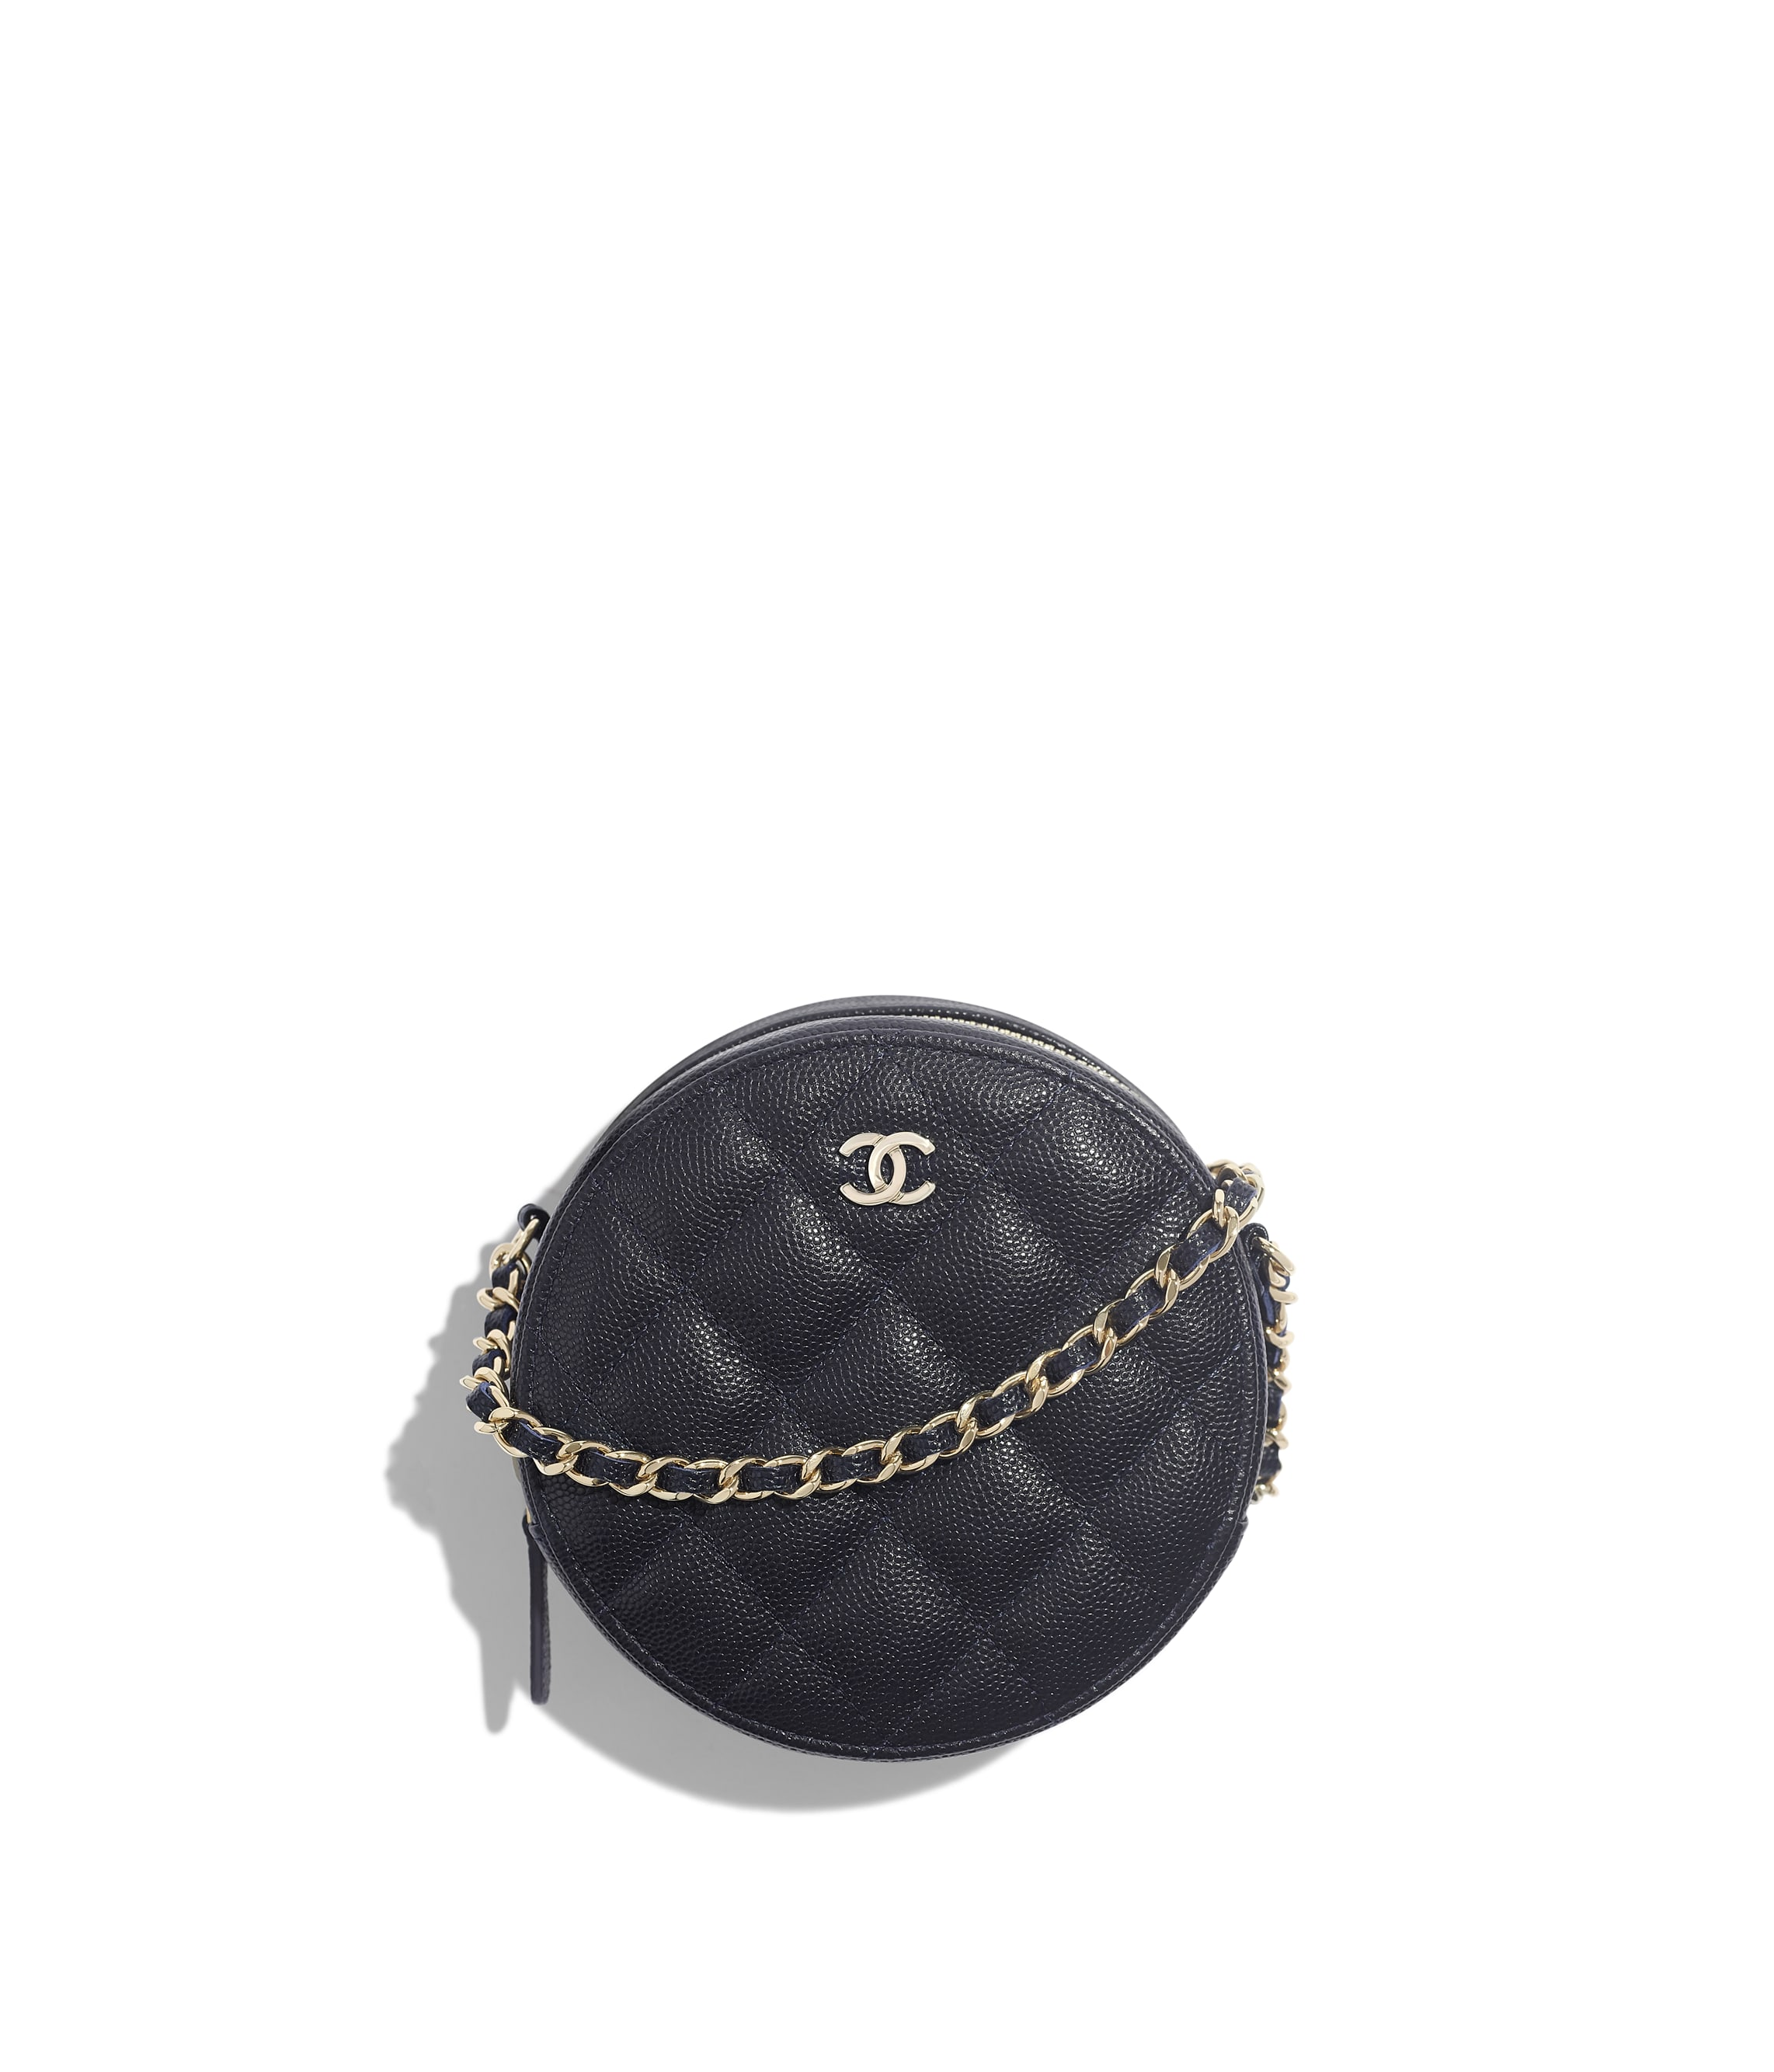 77ec8755 Clutches with Chain - Small Leather Goods - CHANEL